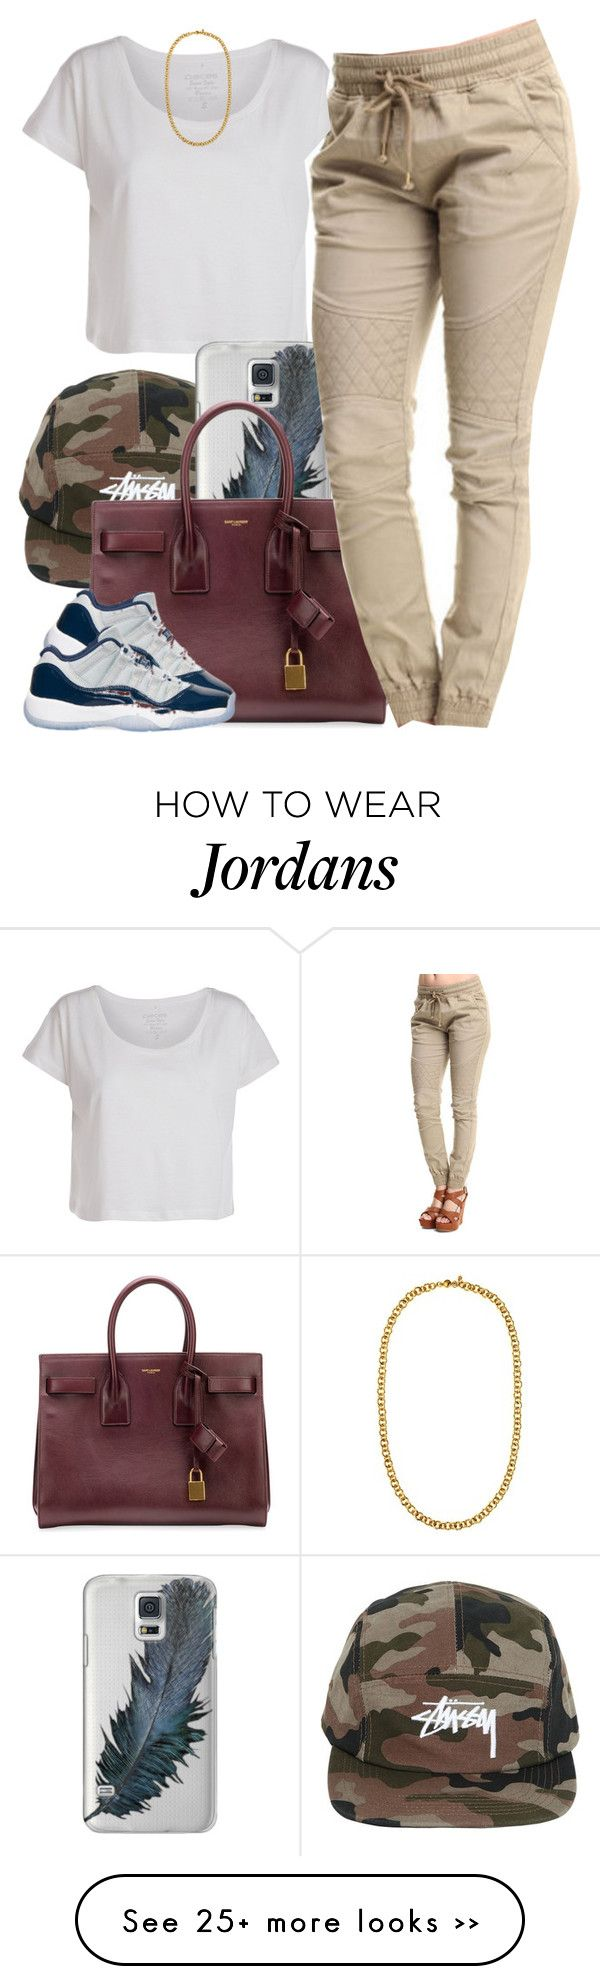 """""""Untitled #722"""" by cjasmyne on Polyvore featuring Pieces, Stussy, Casetify, Yves Saint Laurent and Juicy Couture"""